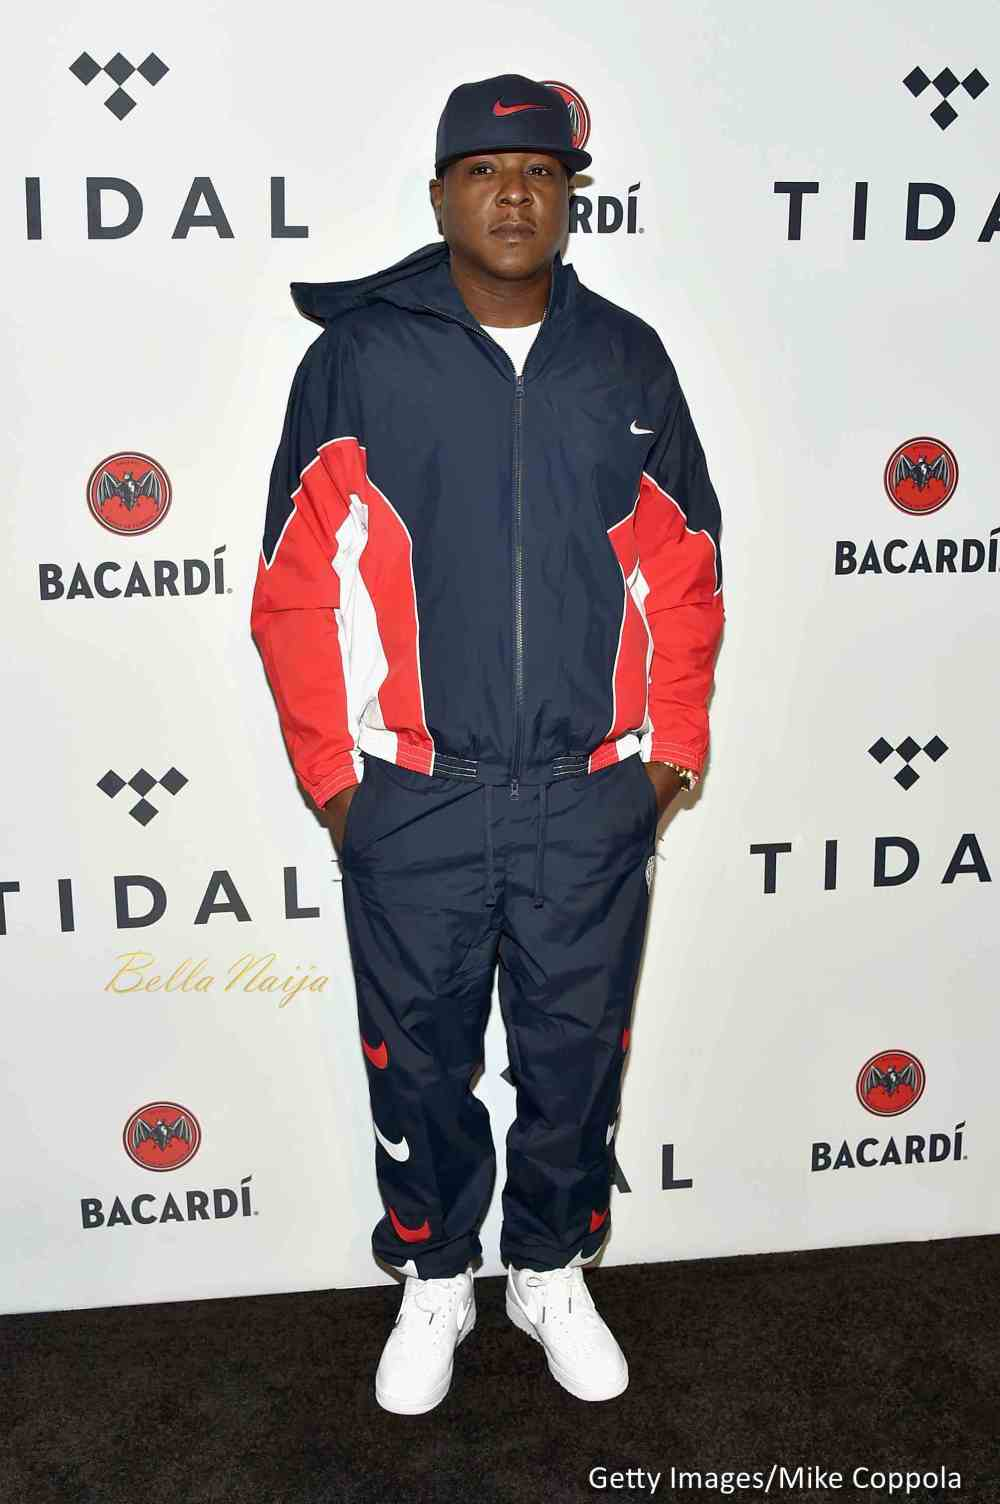 #TidalXBrooklyn: Mr Eazi takes the stage alongside JAY-Z, Chris Brown, Cardi B